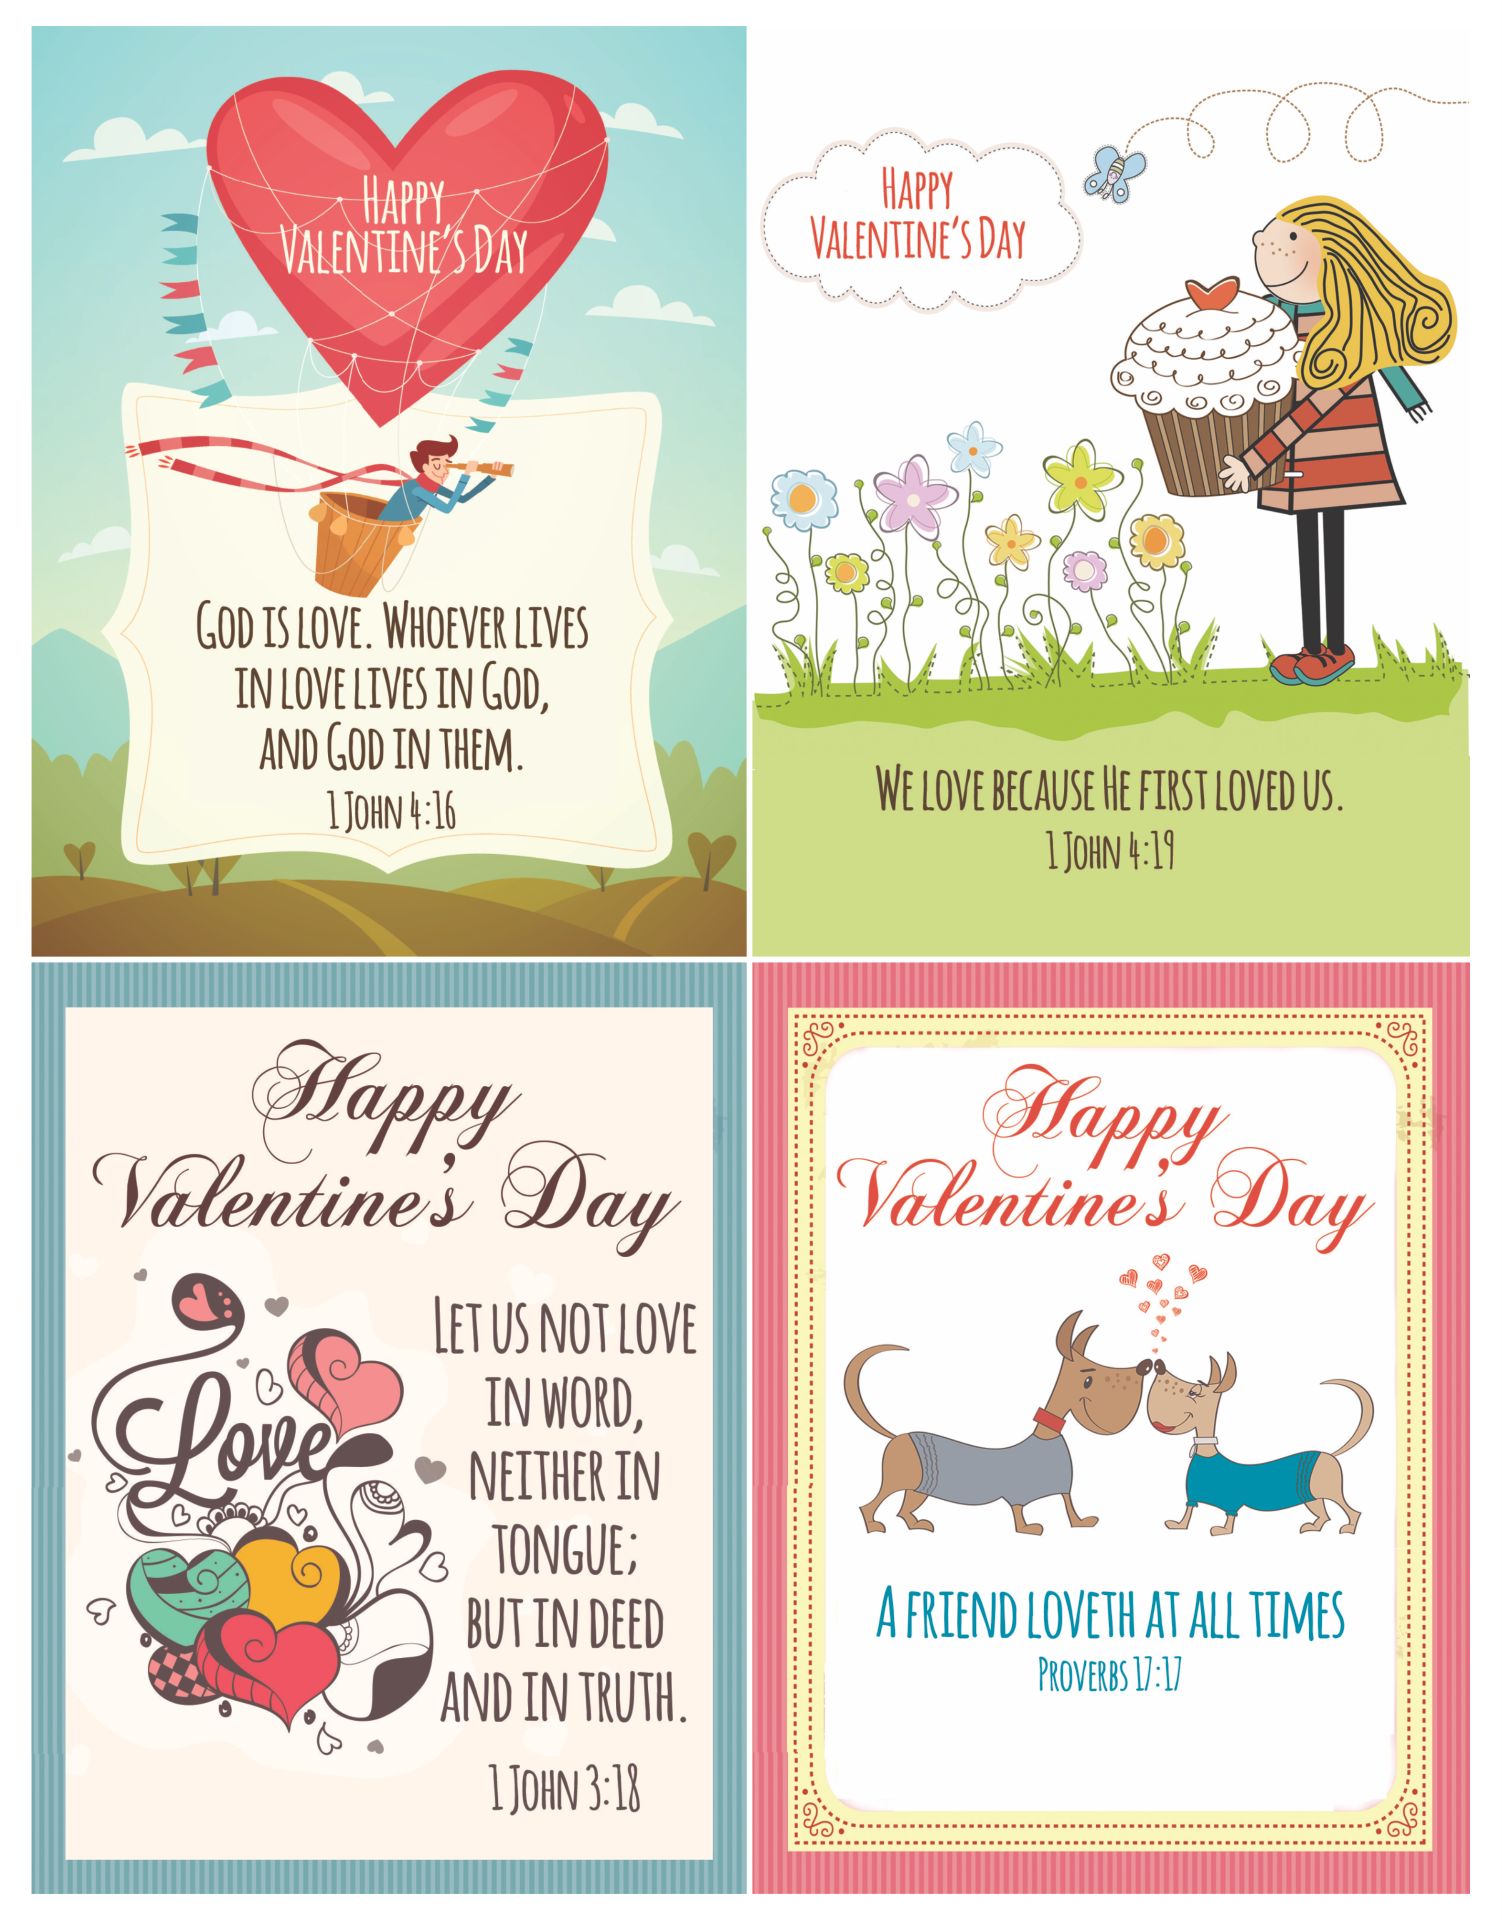 9 Images of Christian Valentine Cards Free Printable